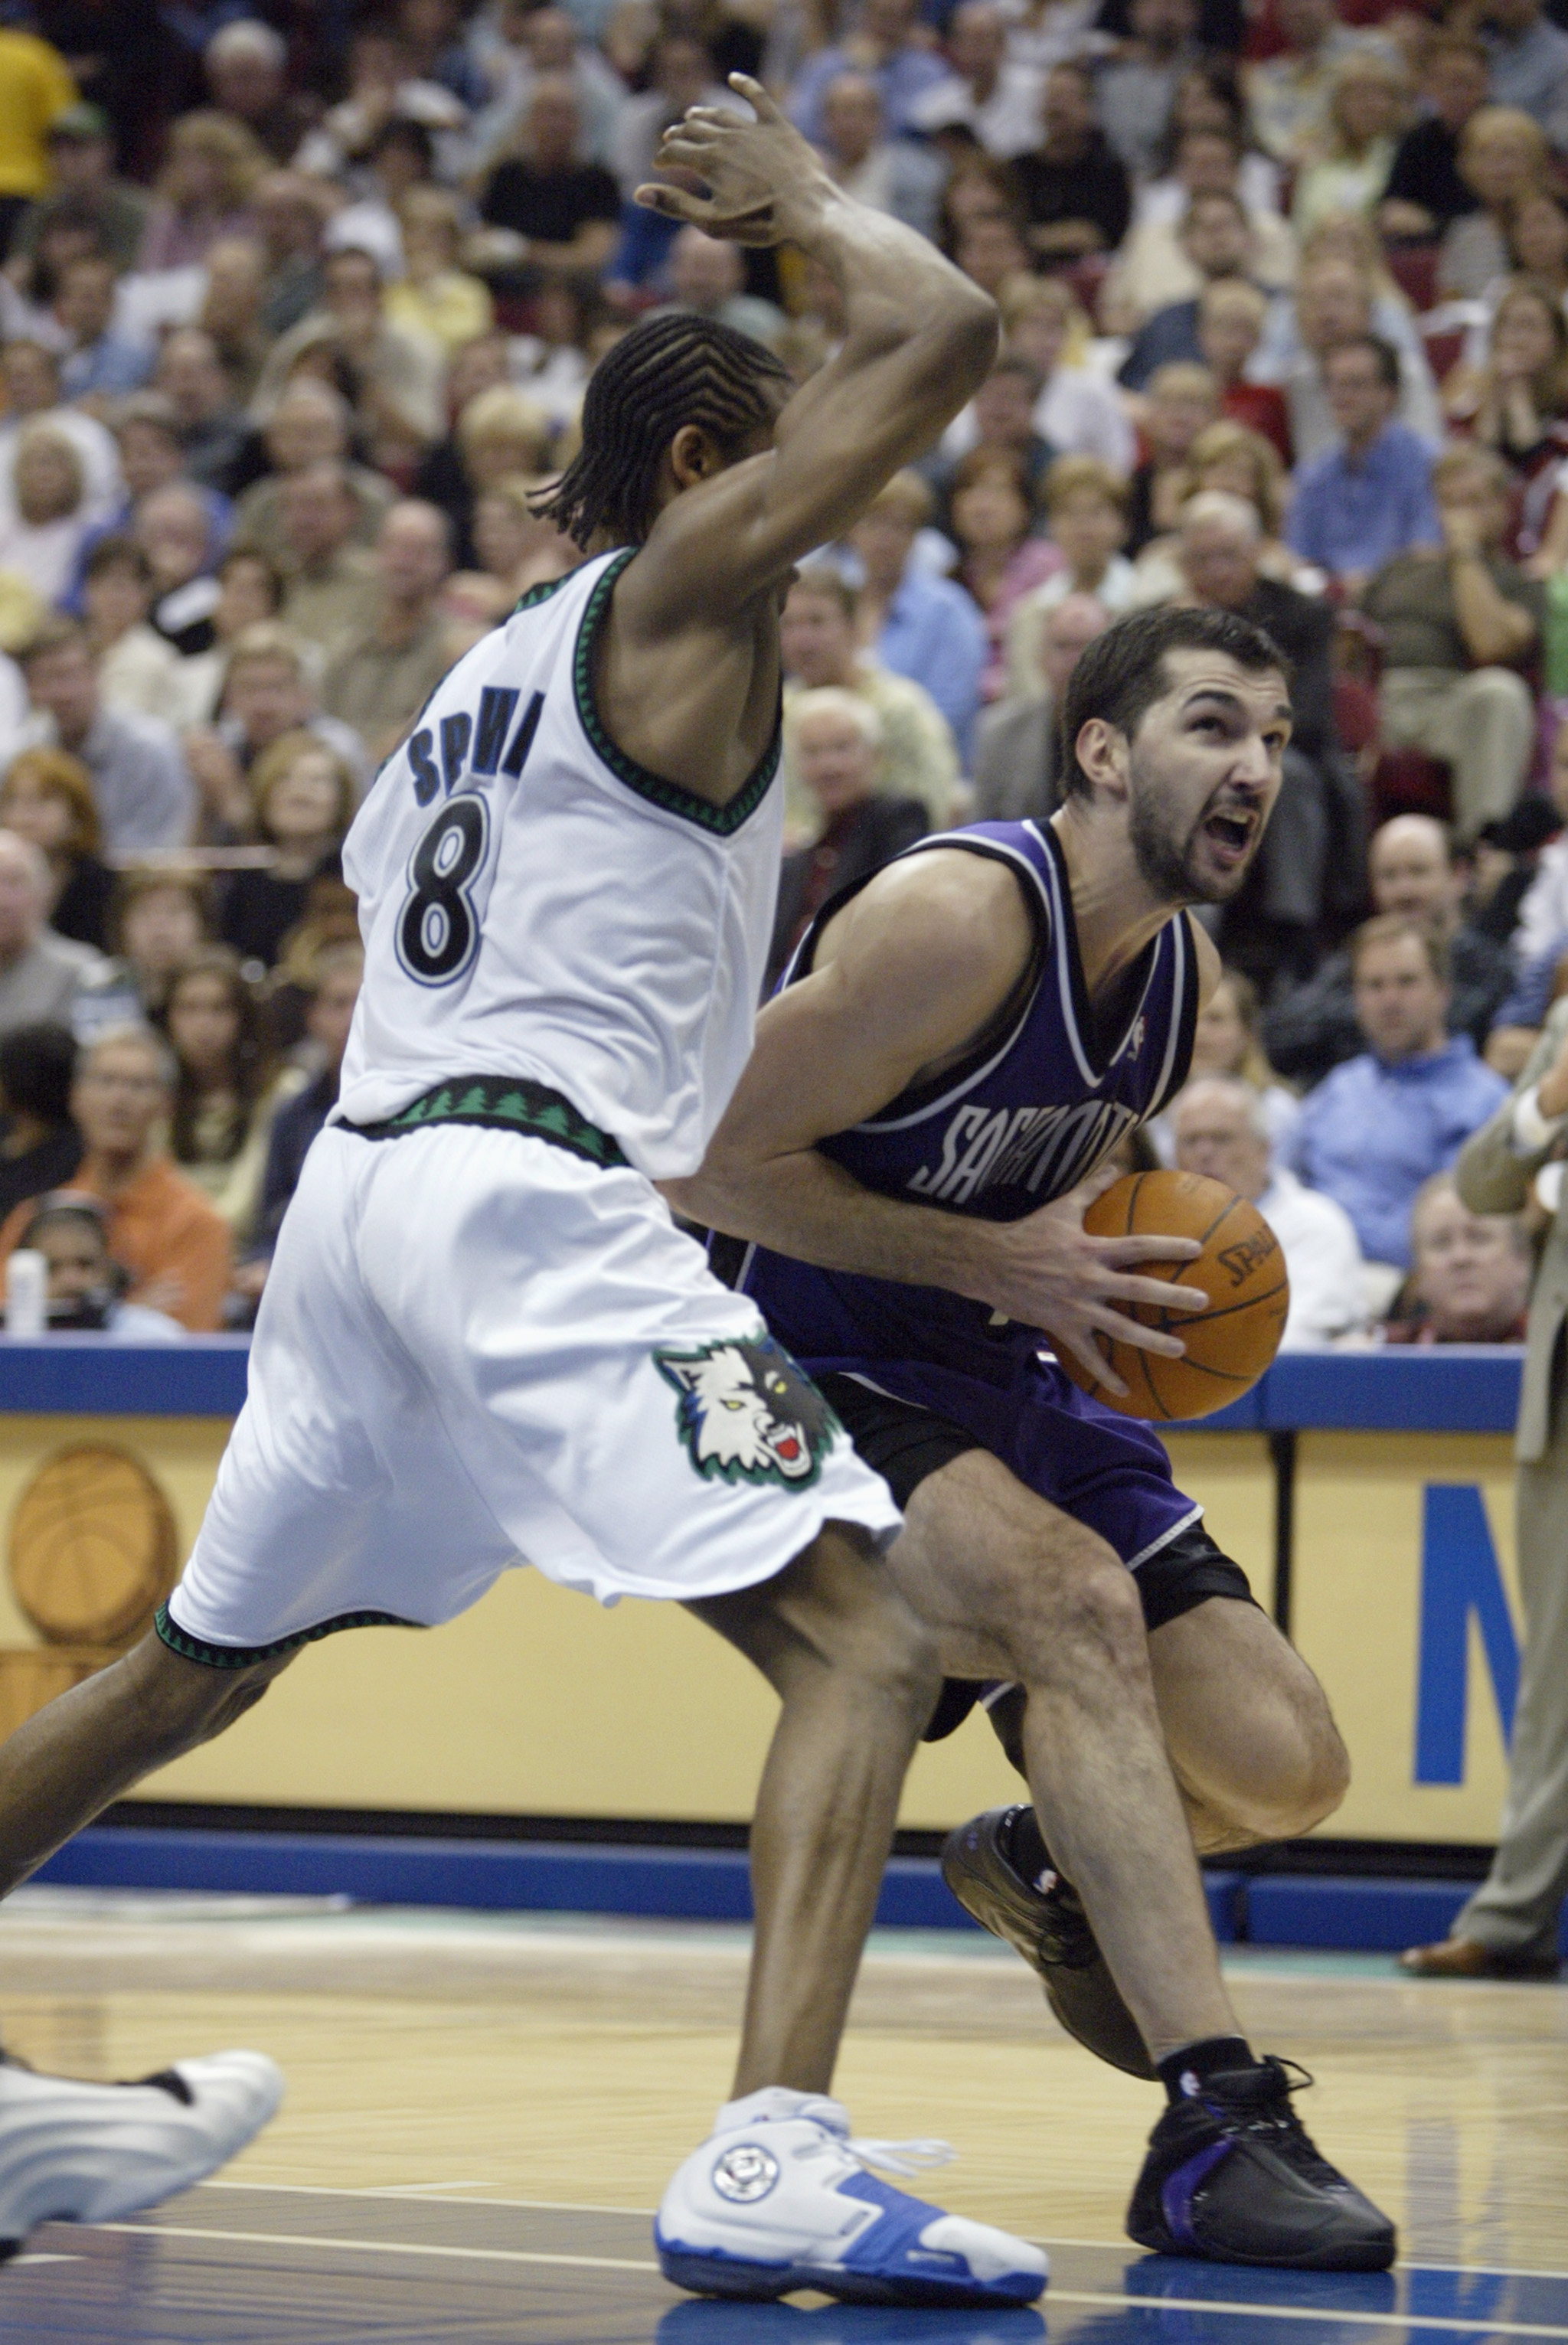 MINNEAPOLIS - MAY 8:  Latrell Sprewell #8 of the Minnesota Timberwolves defends Predrag Stojakovich #16 of the Sacramento Kings in Game Two of the Western Conference Semifinals during the 2004 NBA Playoffs on May 8, 2004 at the Target Center  in Minneapol